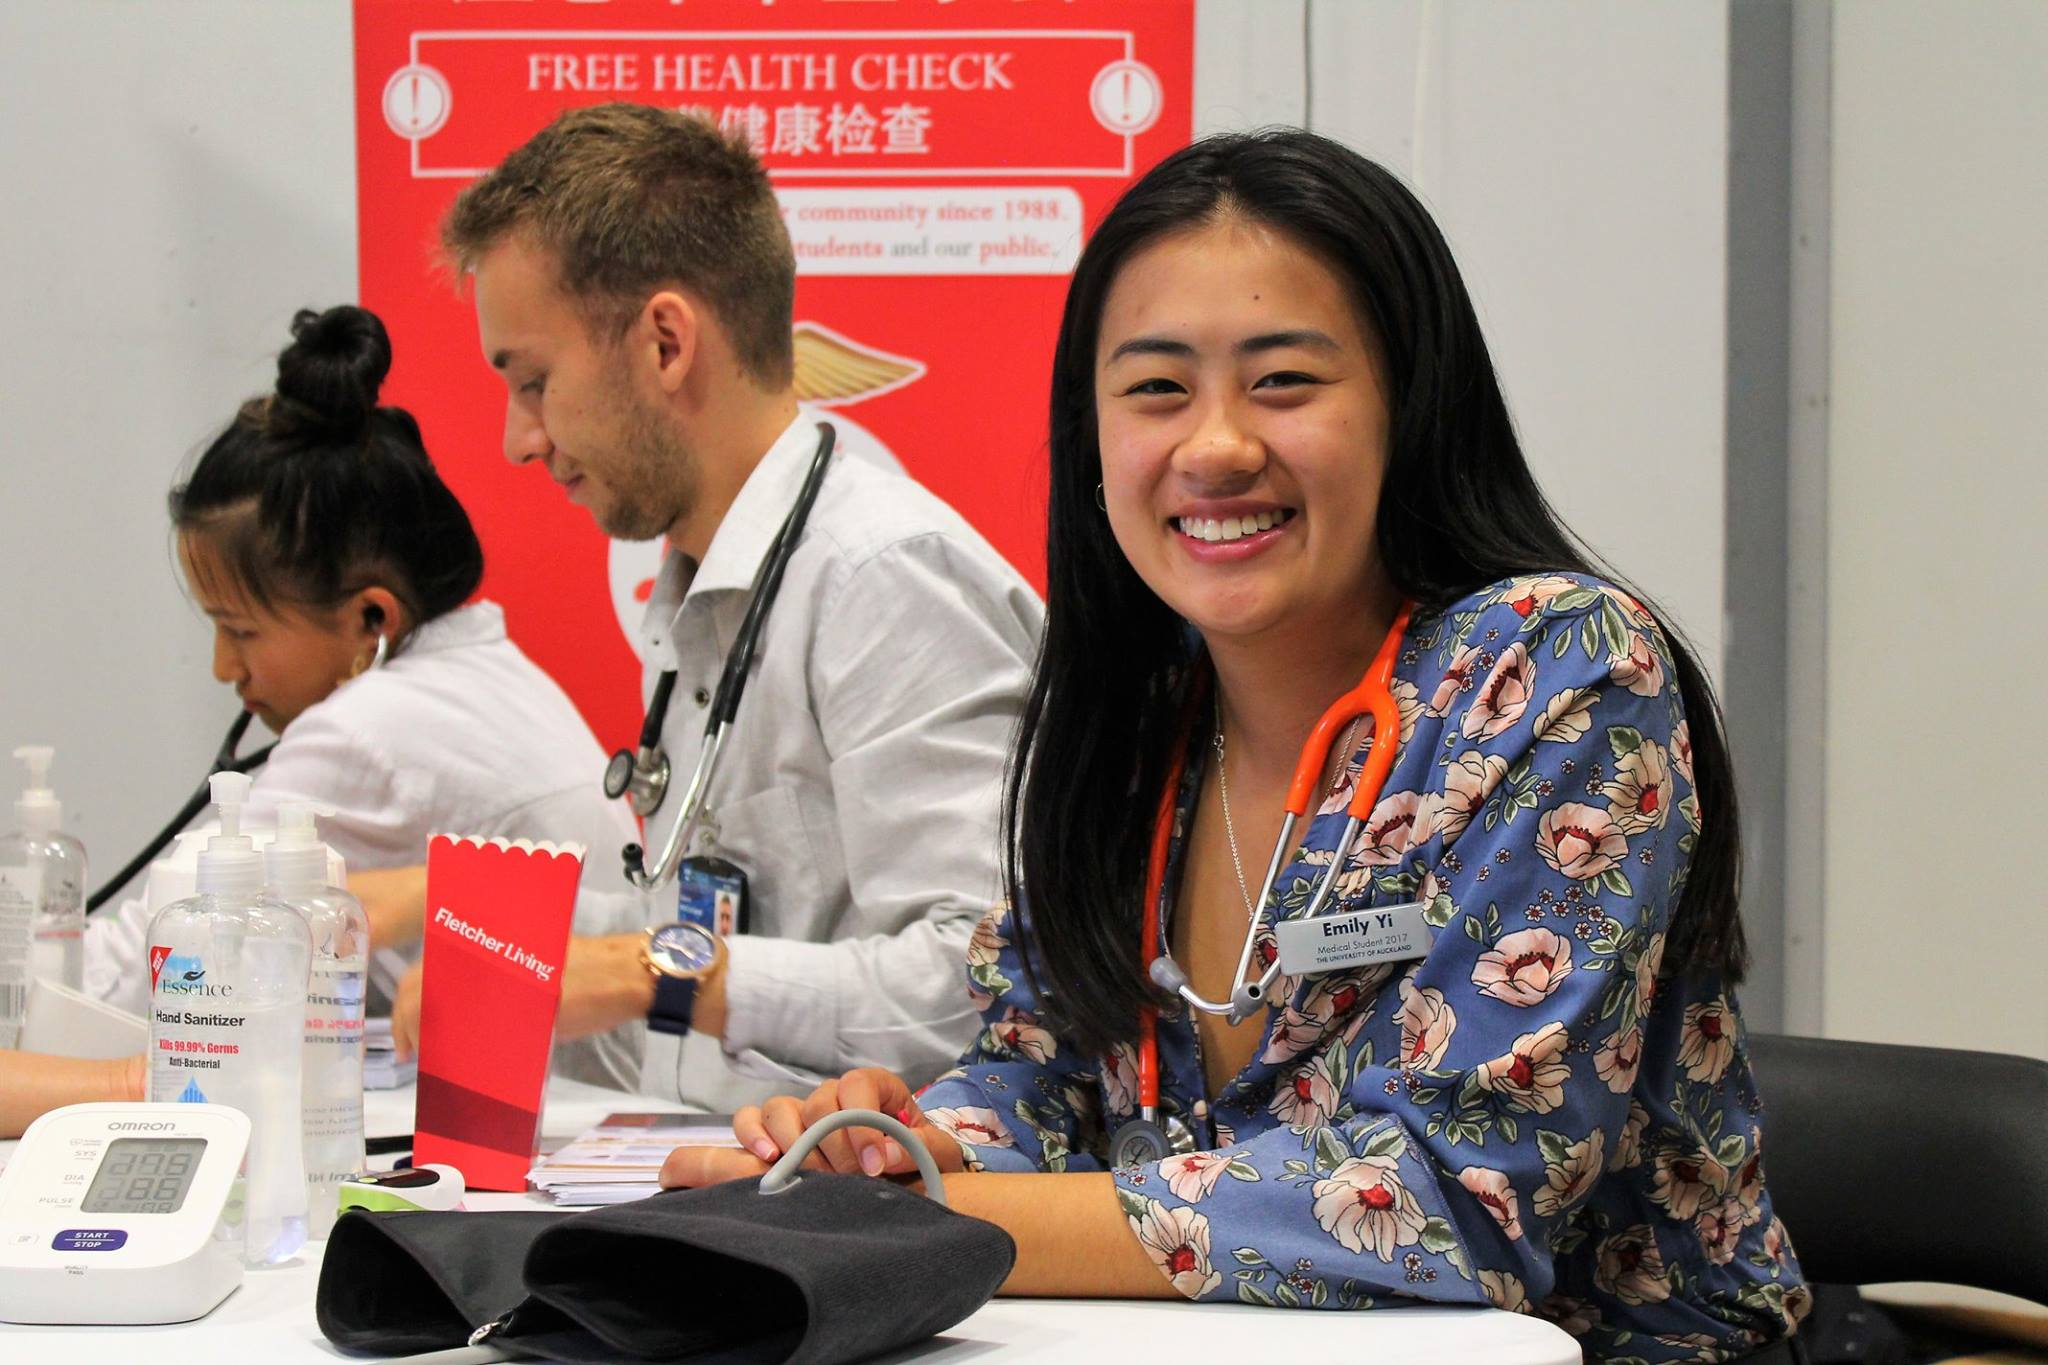 Chinese New Year Health Check Event 1 - Sat 3 February 2018ASB Showgrounds, Green Lane West, Epsom, Akl